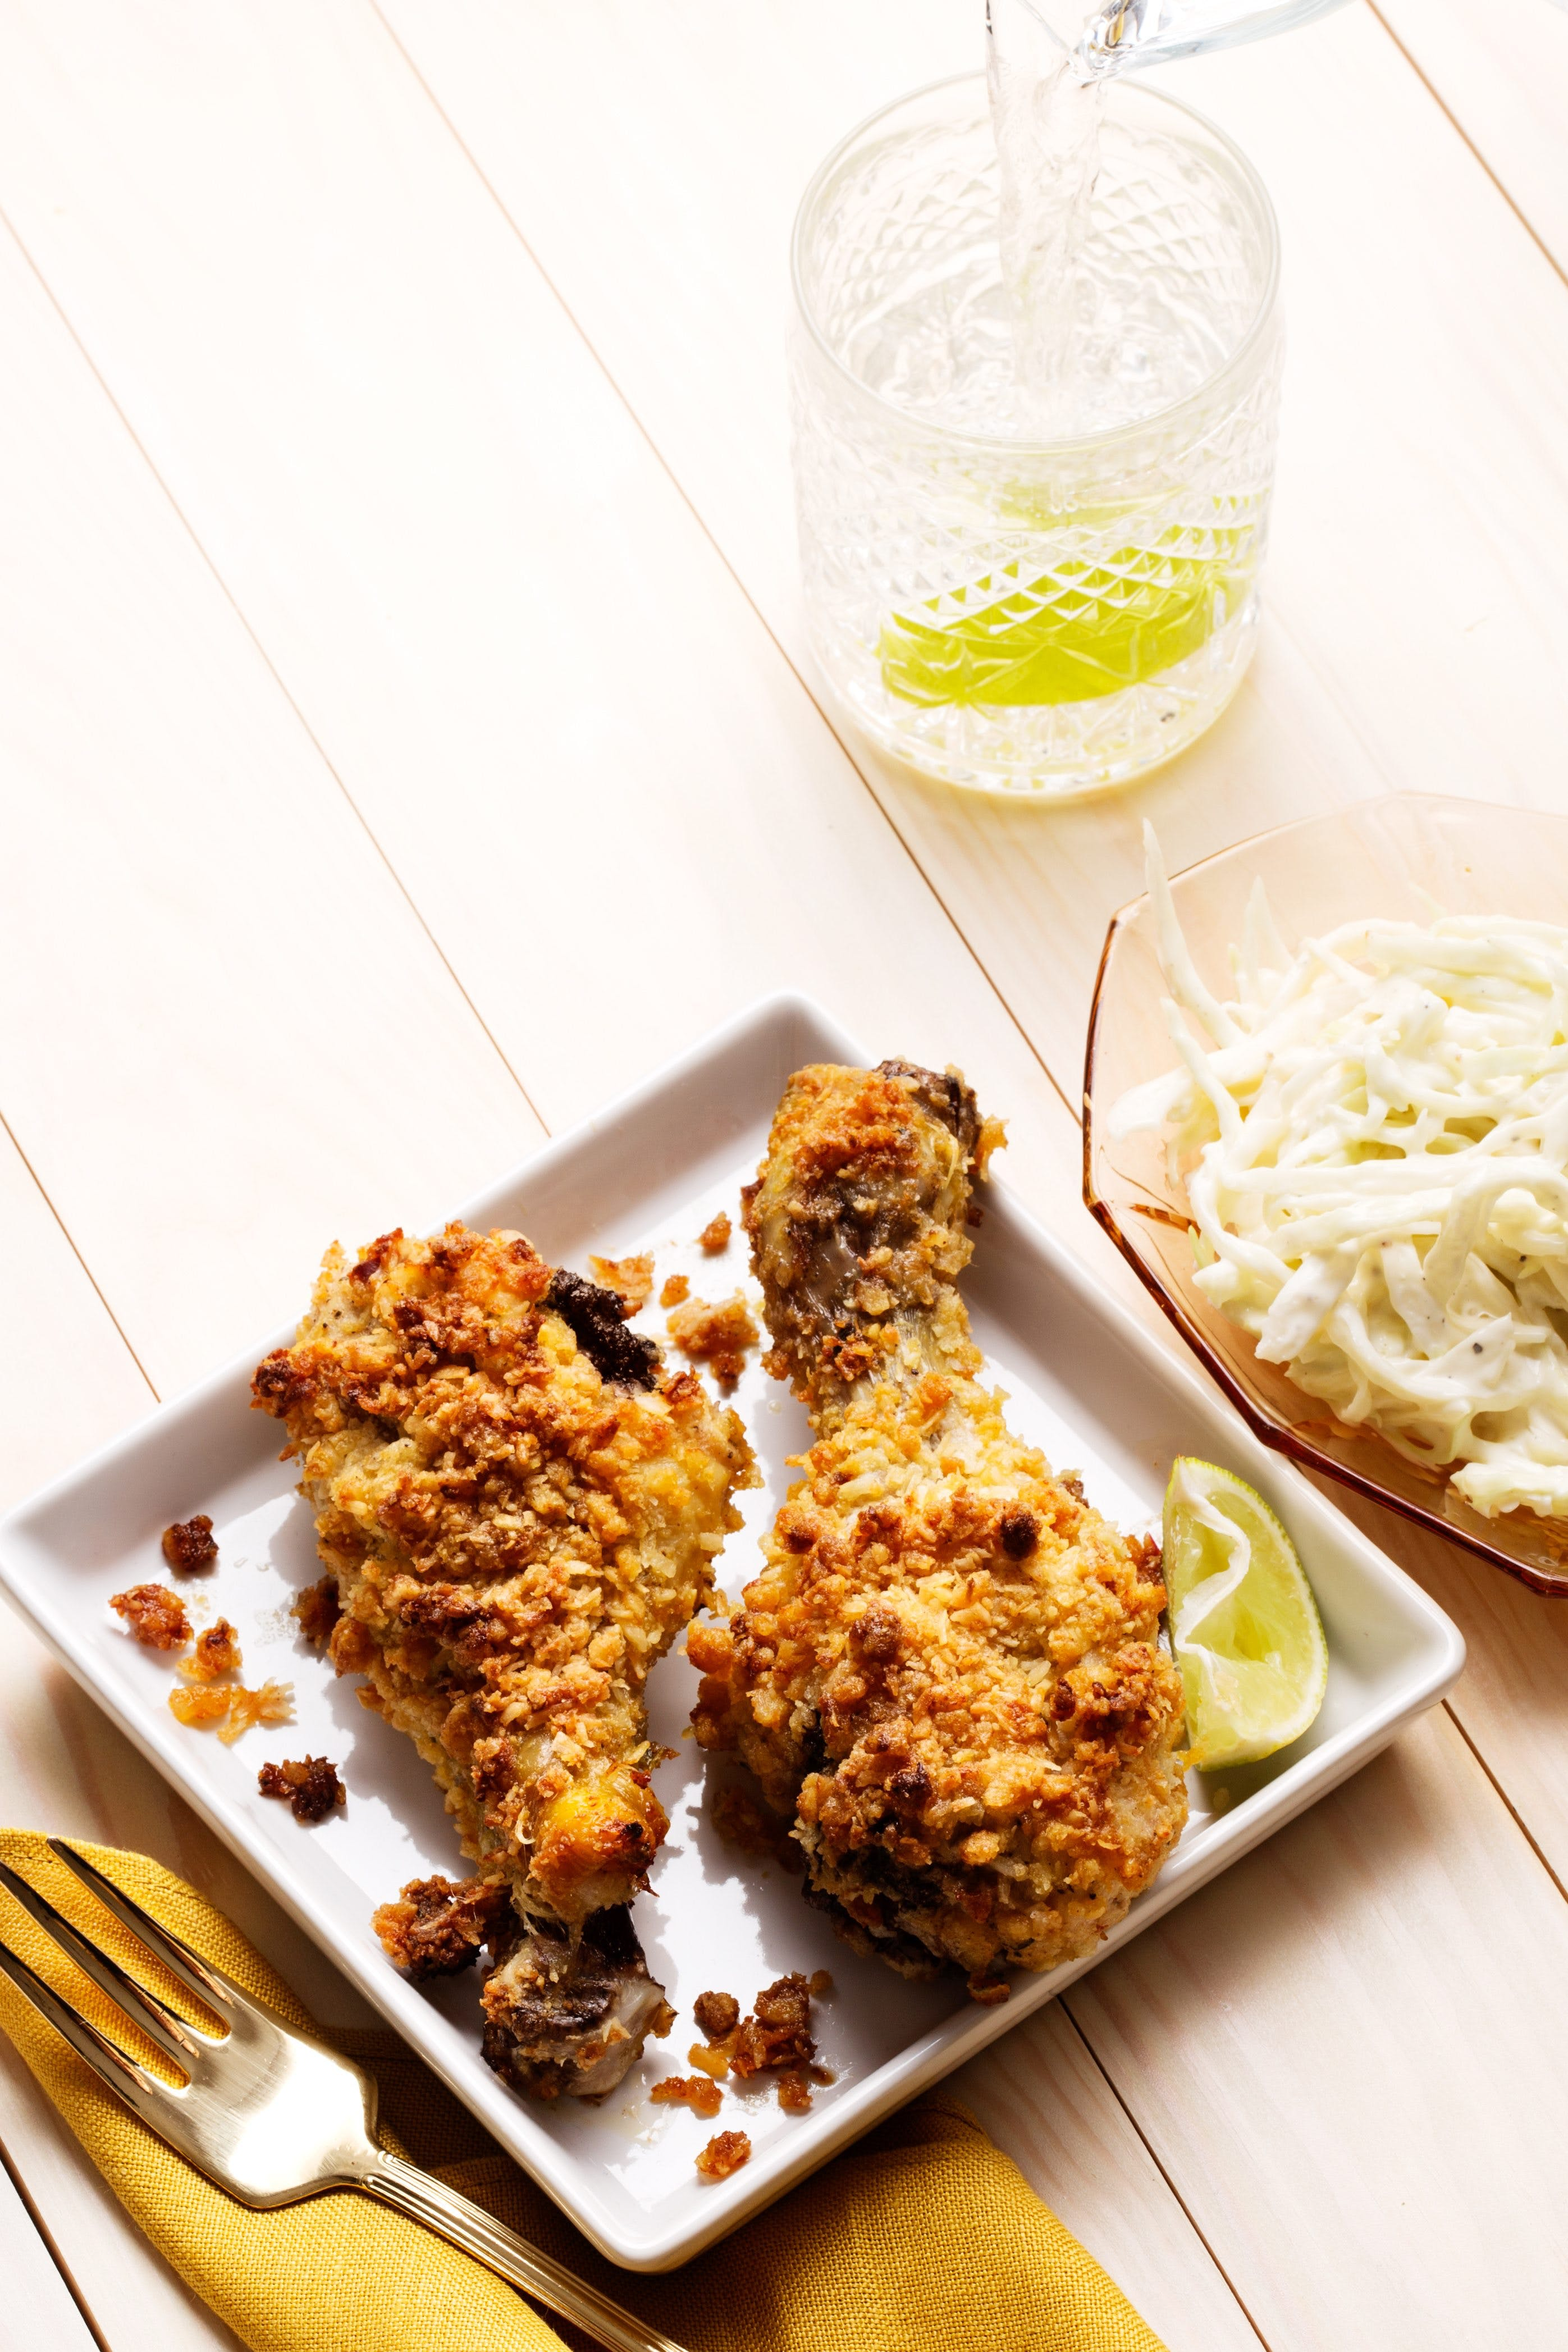 Crunchy keto chicken drumsticks with coleslaw